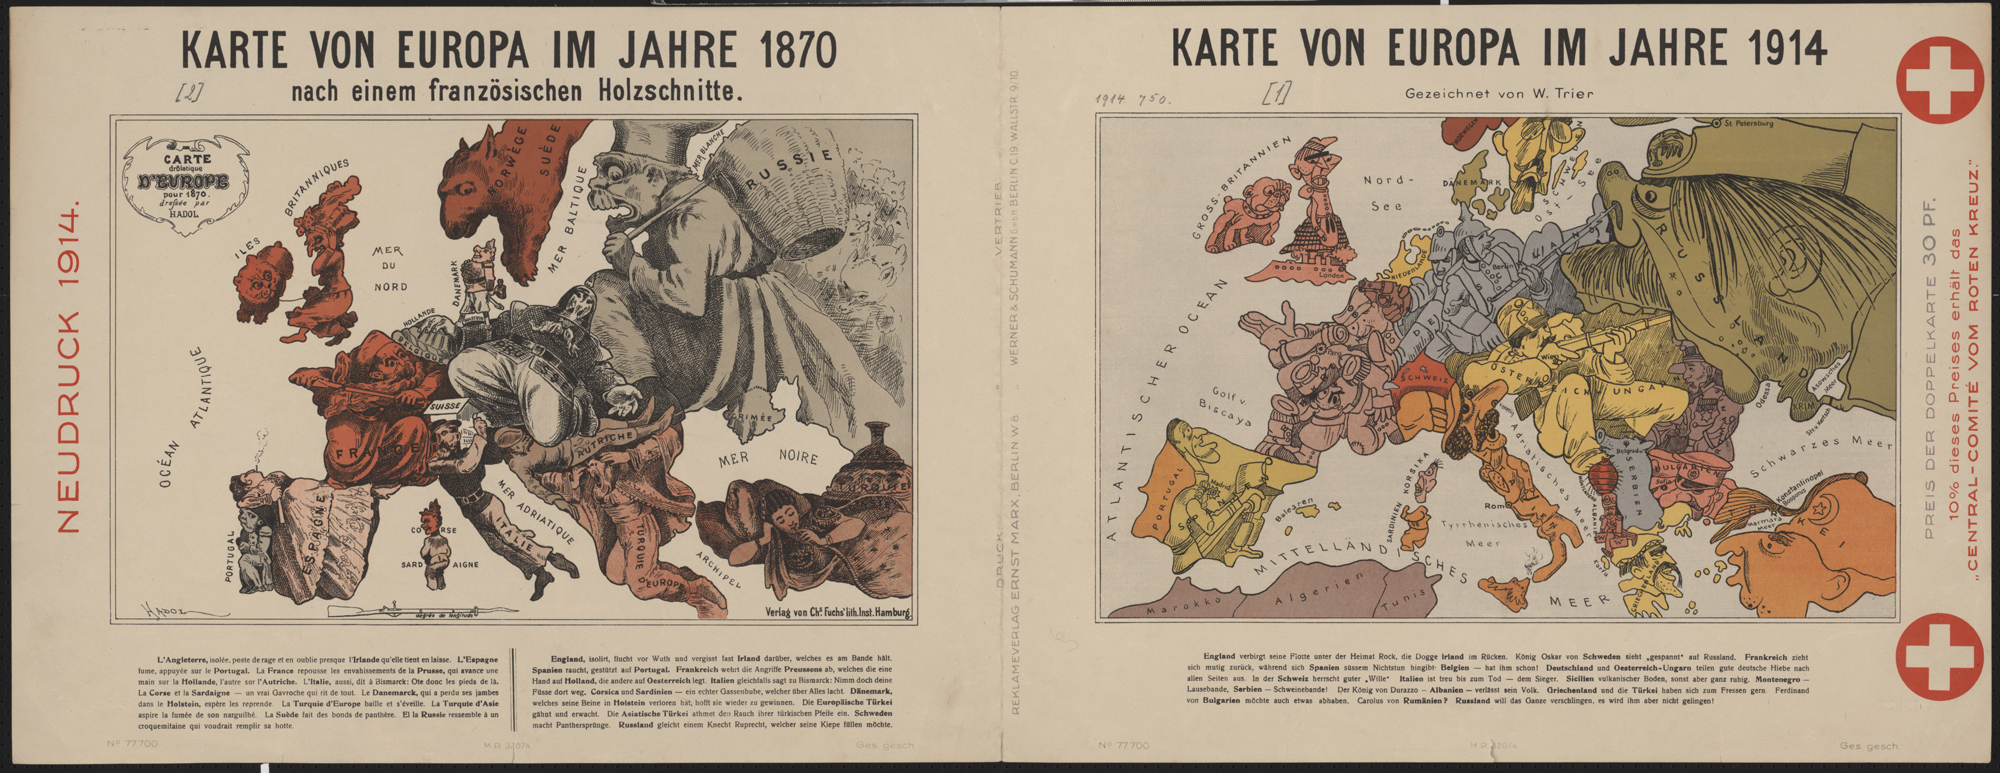 Drawn by German graphic artist Walter Trier, this map from 1914 depicts the personalities of different European countries.